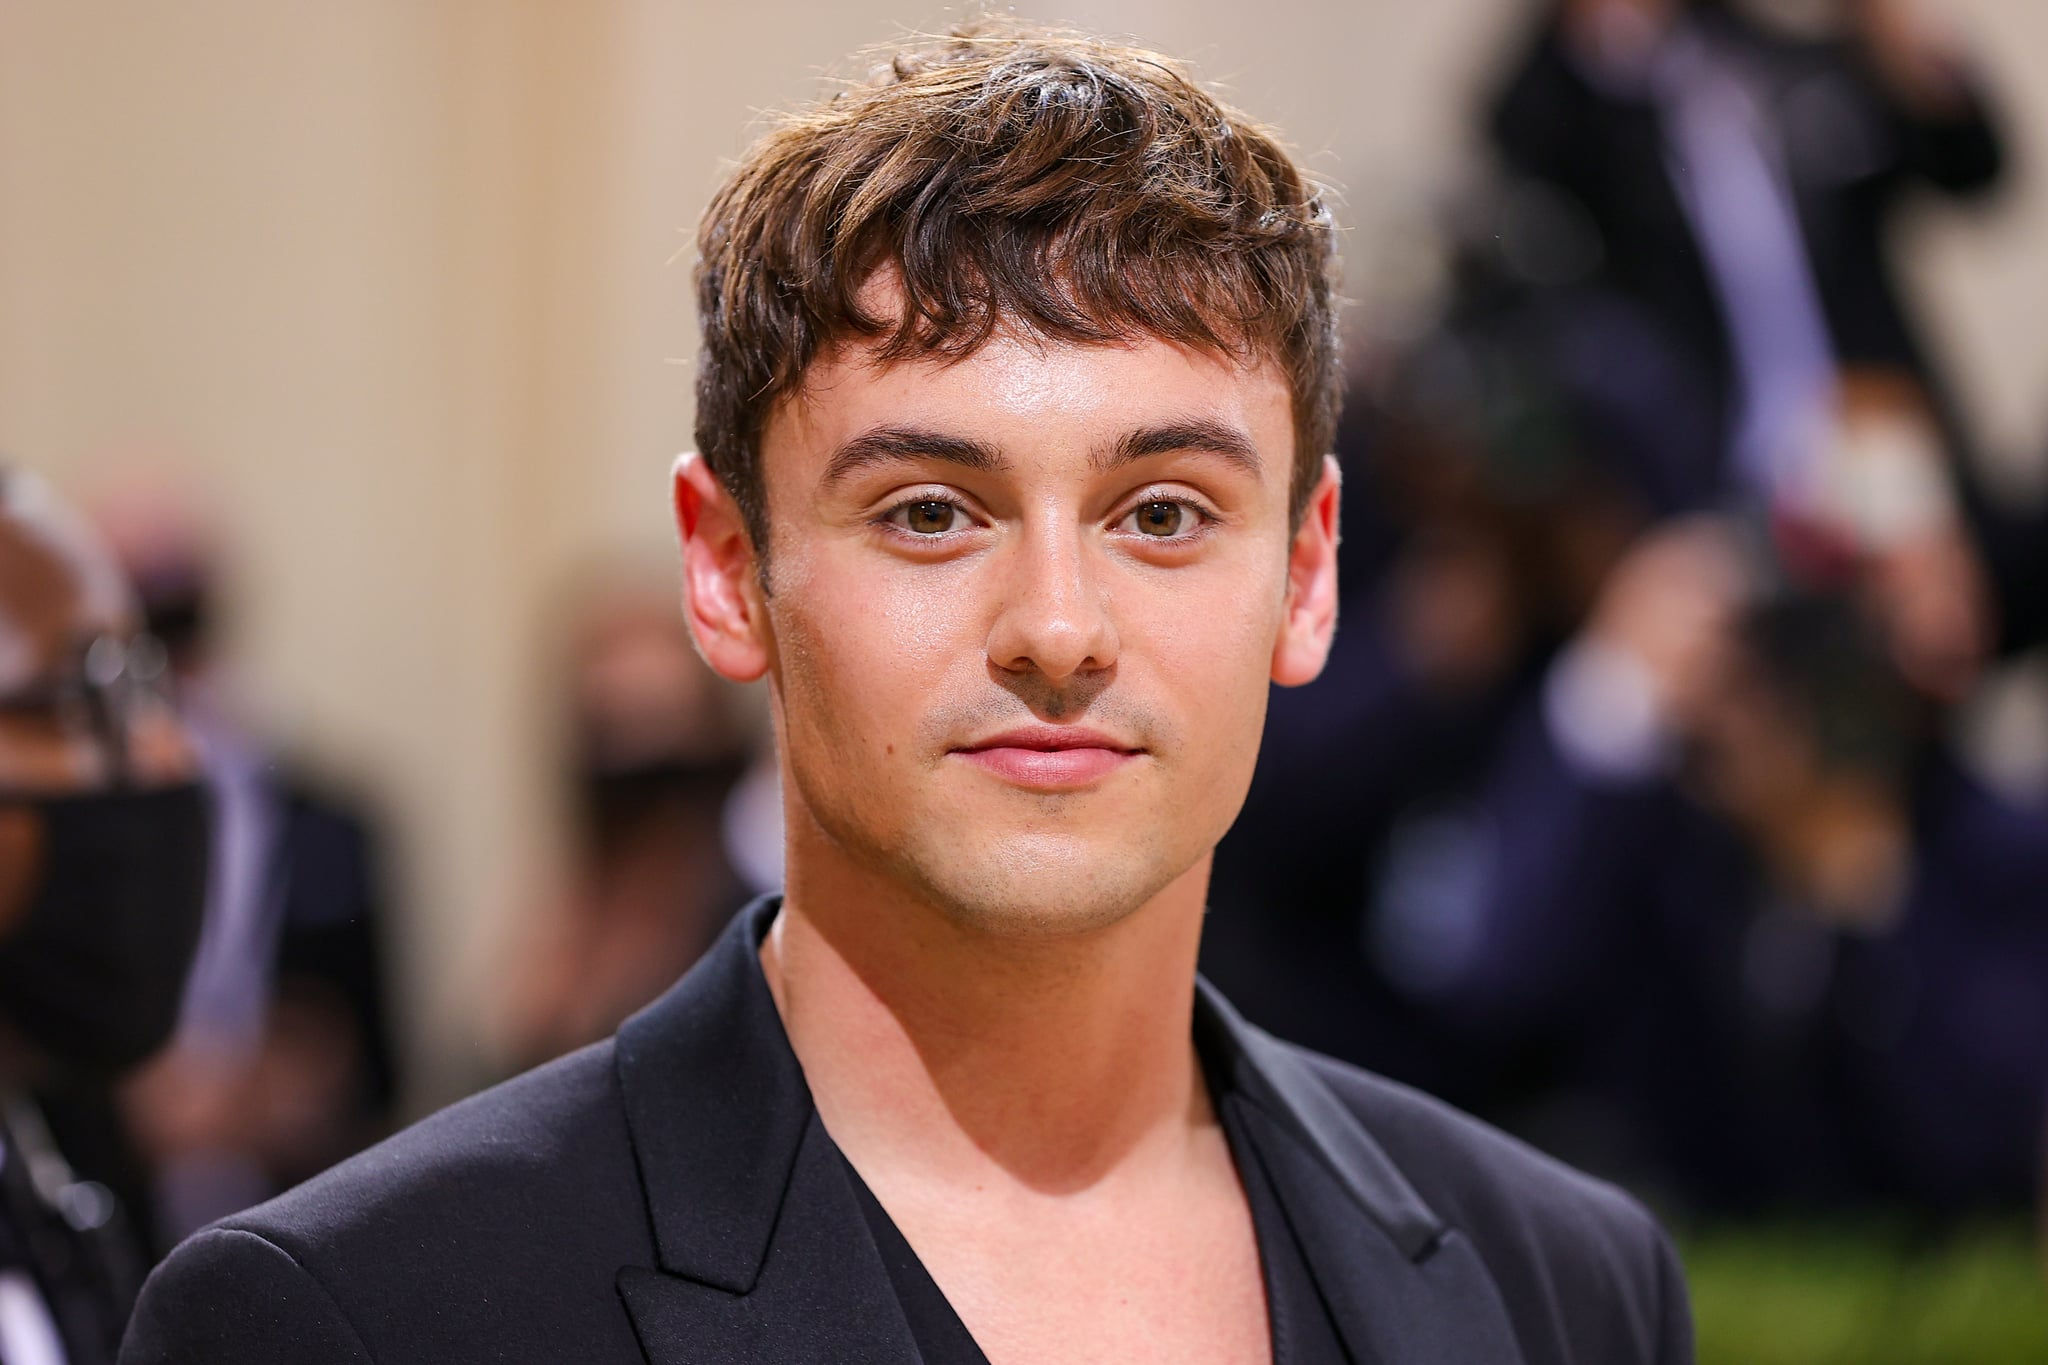 NEW YORK, NEW YORK - SEPTEMBER 13: Tom Daley attends The 2021 Met Gala Celebrating In America: A Lexicon Of Fashion at Metropolitan Museum of Art on September 13, 2021 in New York City. (Photo by Theo Wargo/Getty Images)